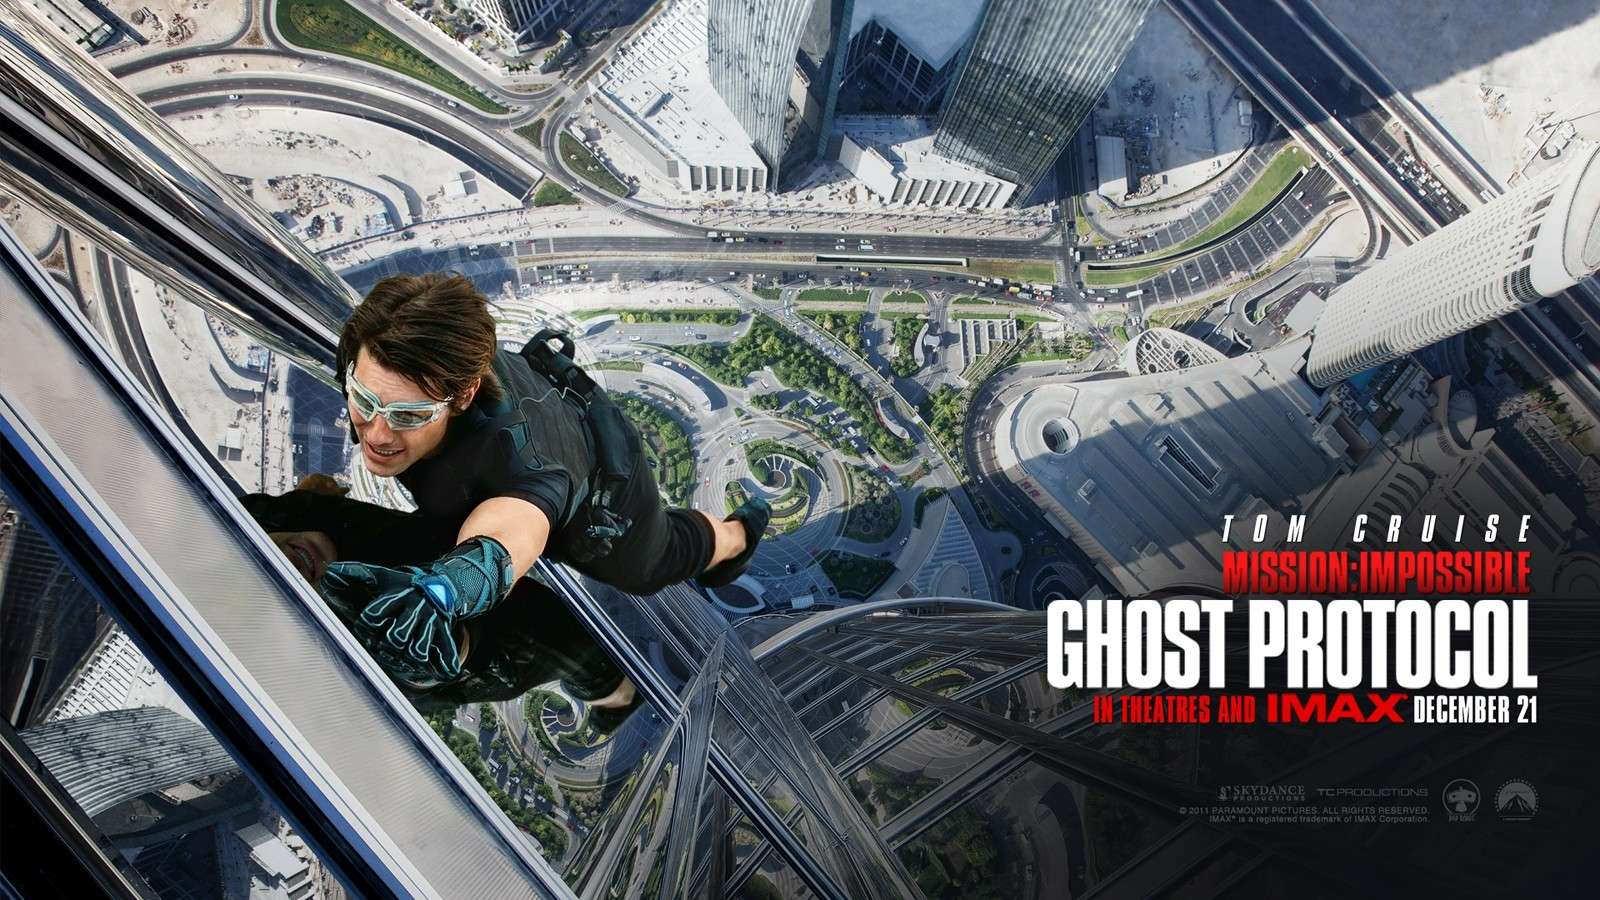 Mission impossible ghost protocol wallpaper hd wallpapers - Mission impossible wallpaper ...